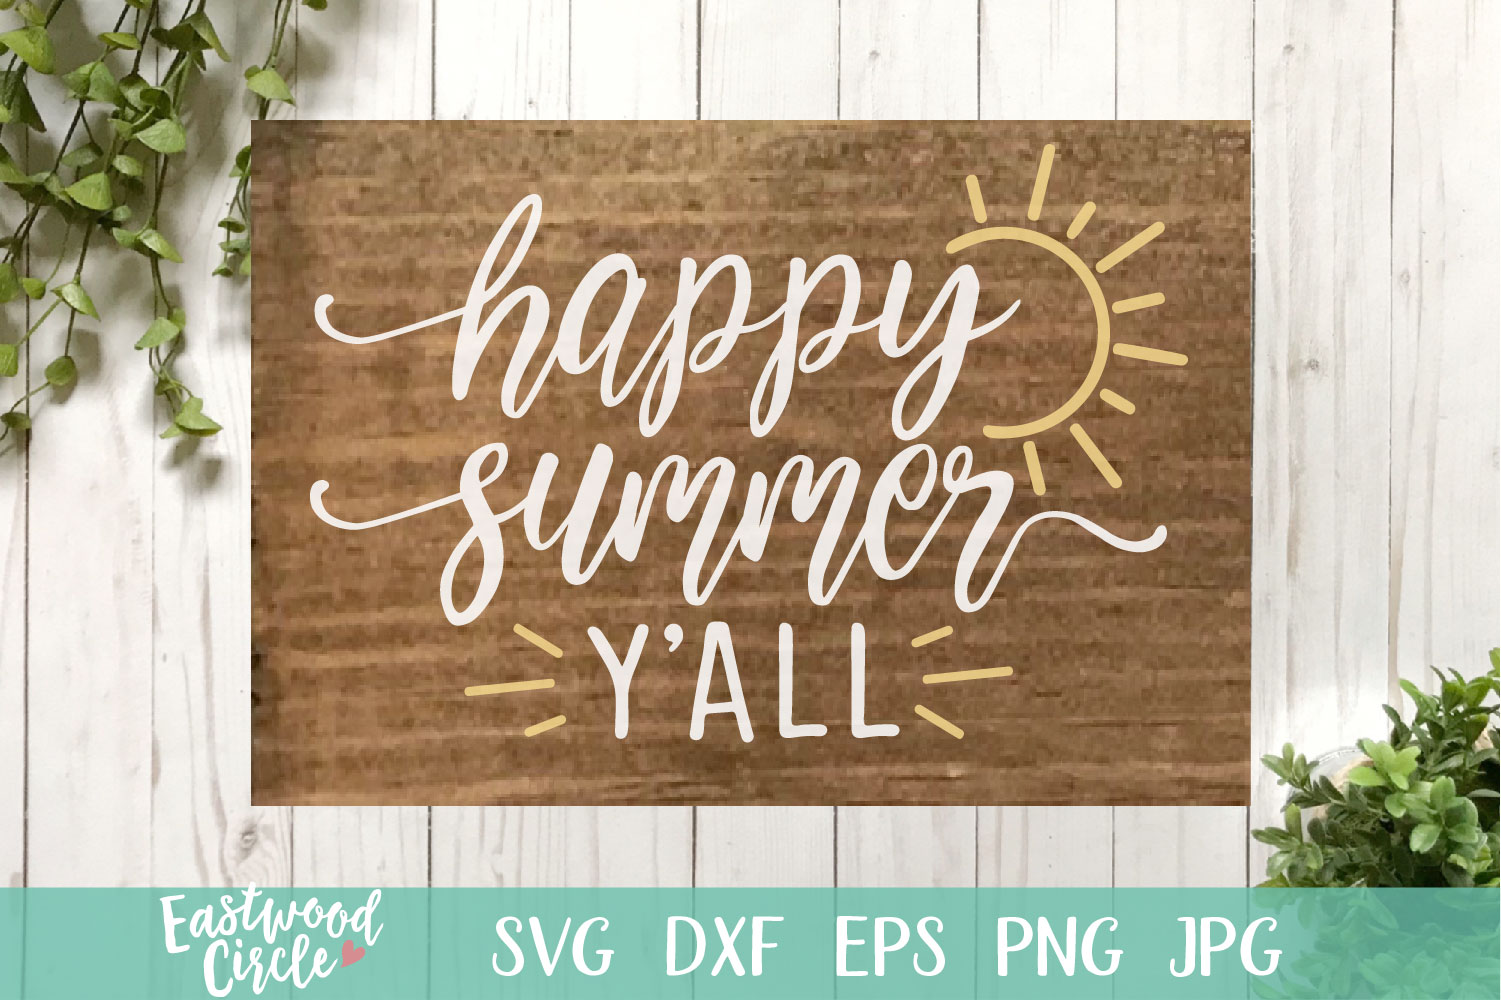 Happy Summer Y'all - A Summer SVG File for Signs example image 1